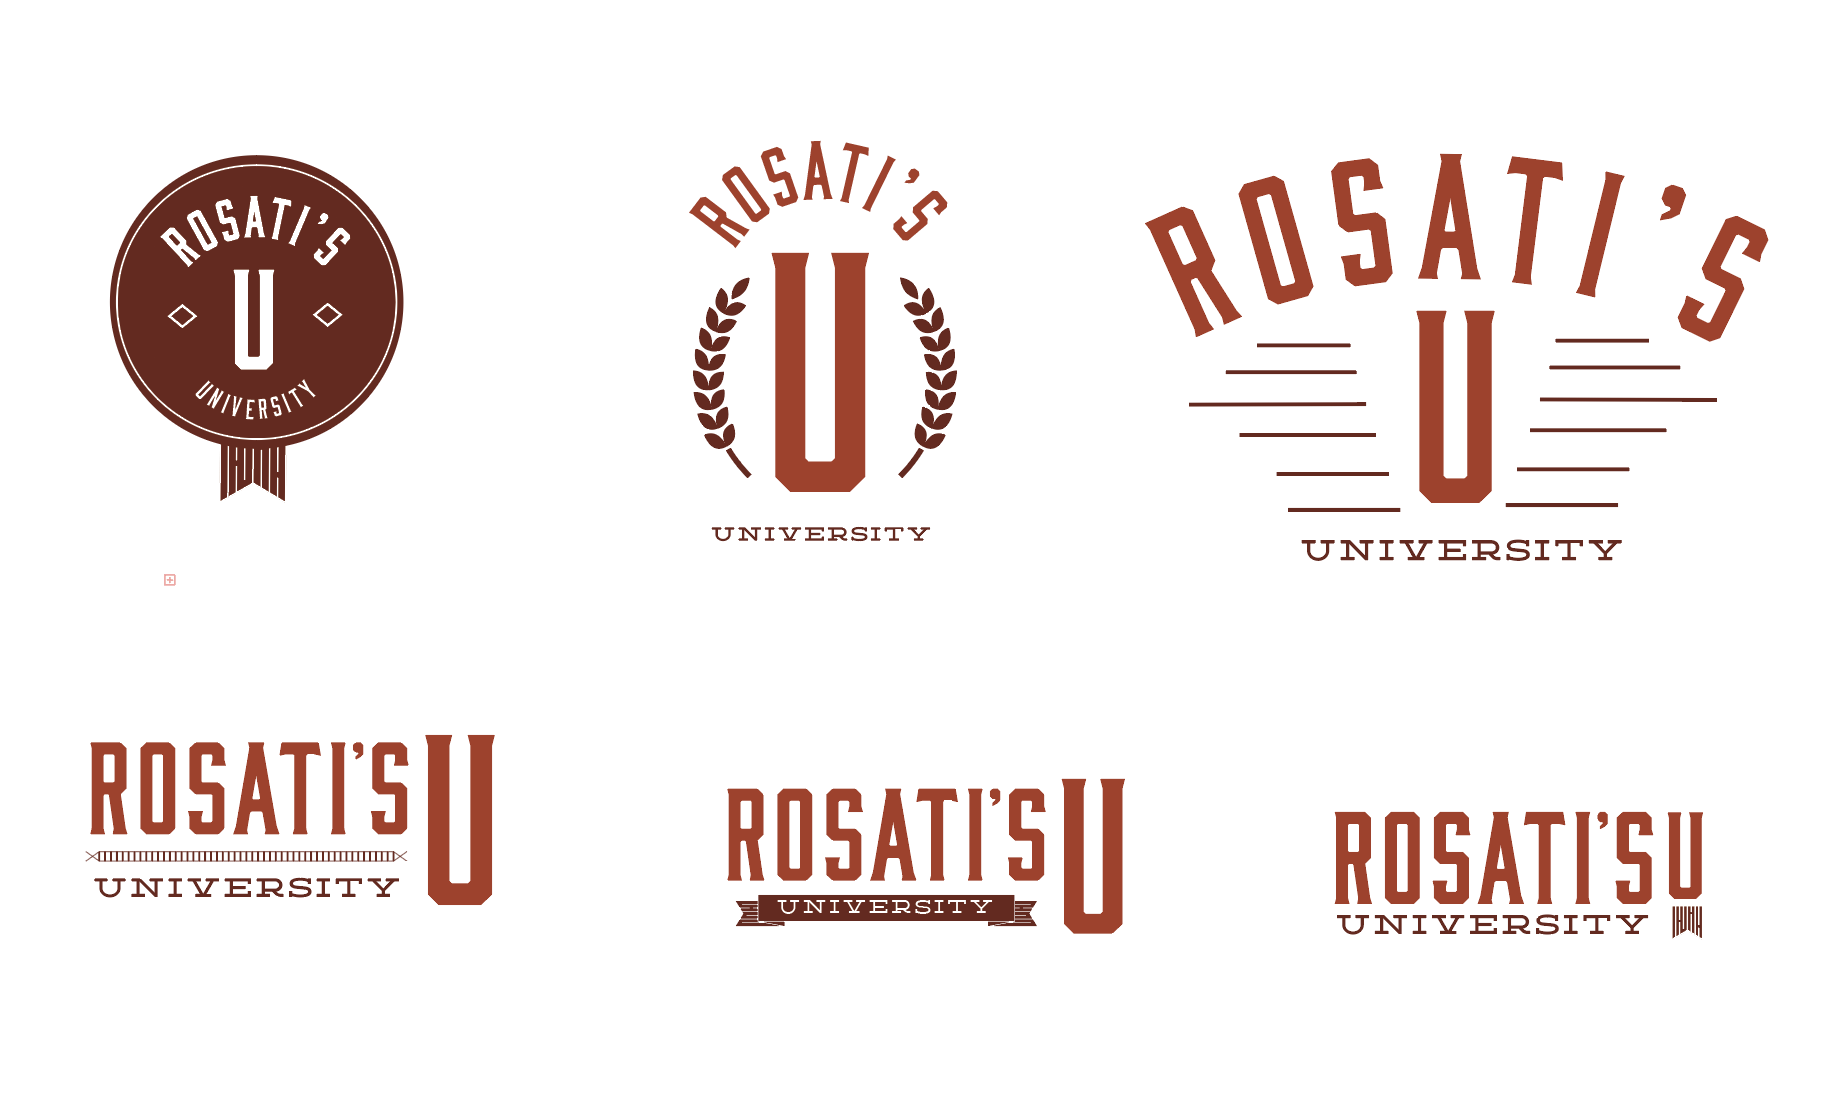 These were the logo concepts I came up with. Ultimately they choose the logo on the first row in the center .